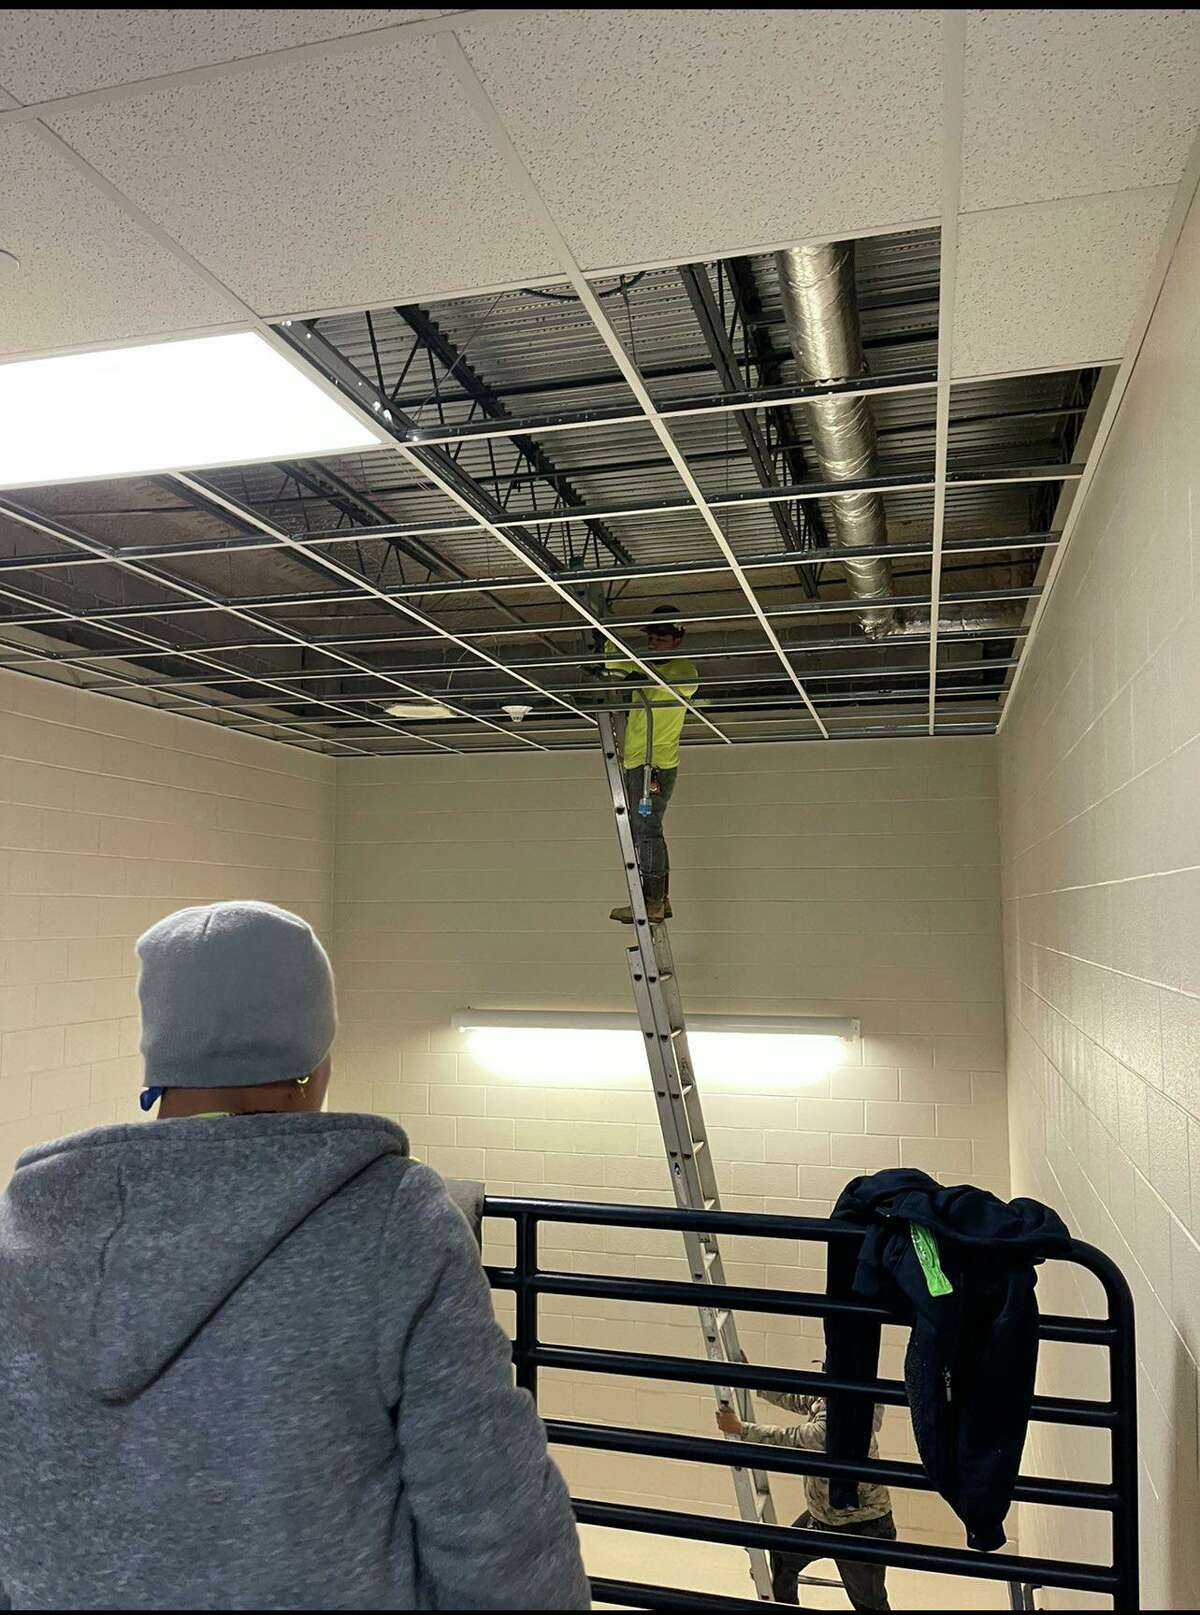 Tomball ISD Chief Financial Officer Jim Ross, said all issues caused by the ice storm have been repaired as a result of tireless work by the maintenance department and various contractors.